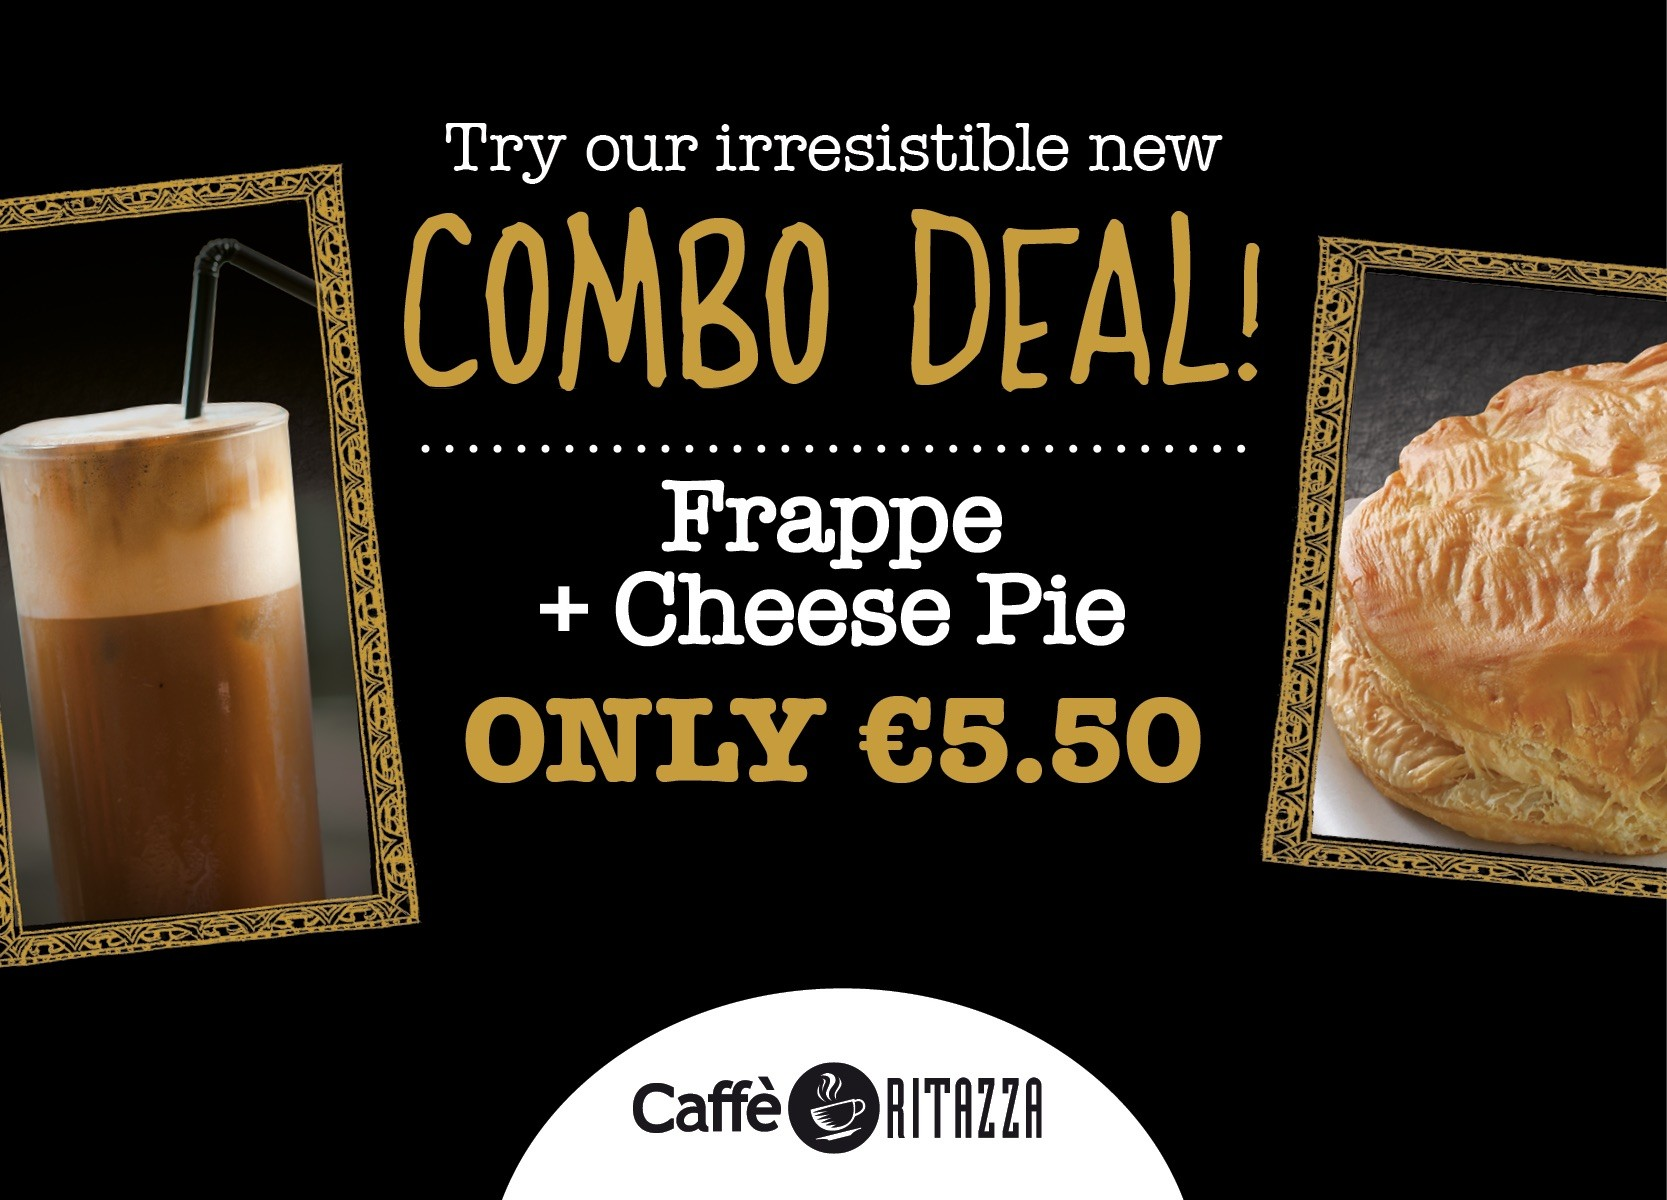 Combo deal. Get a frappe and a cheese pie for only €5.50